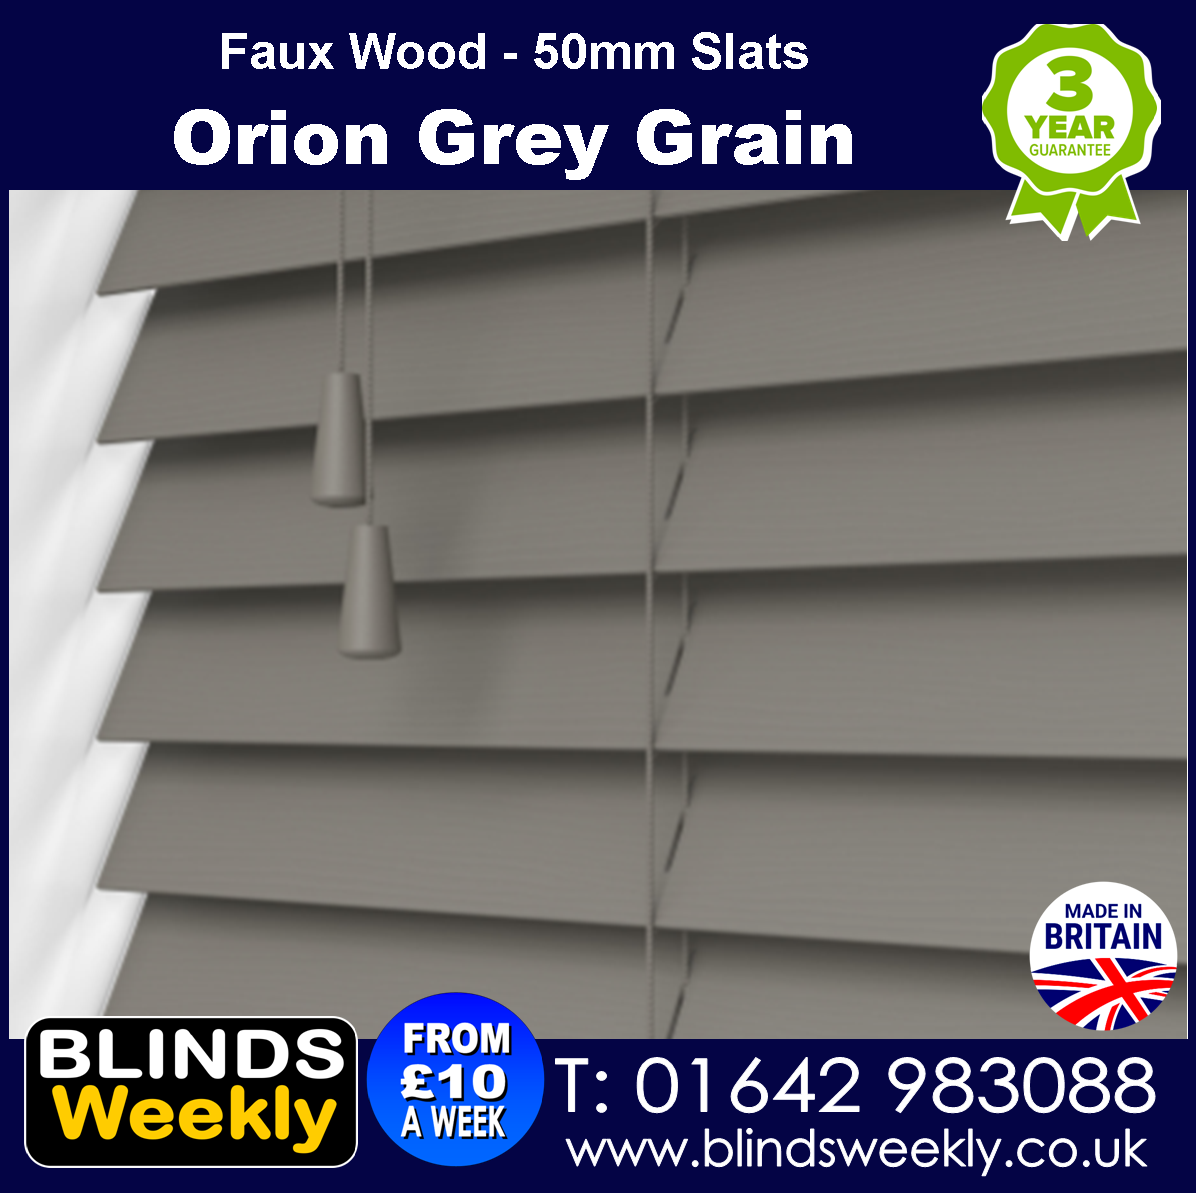 Orion Grey Grain Faux Wood Blinds 50mm Slats from Blinds Weekly